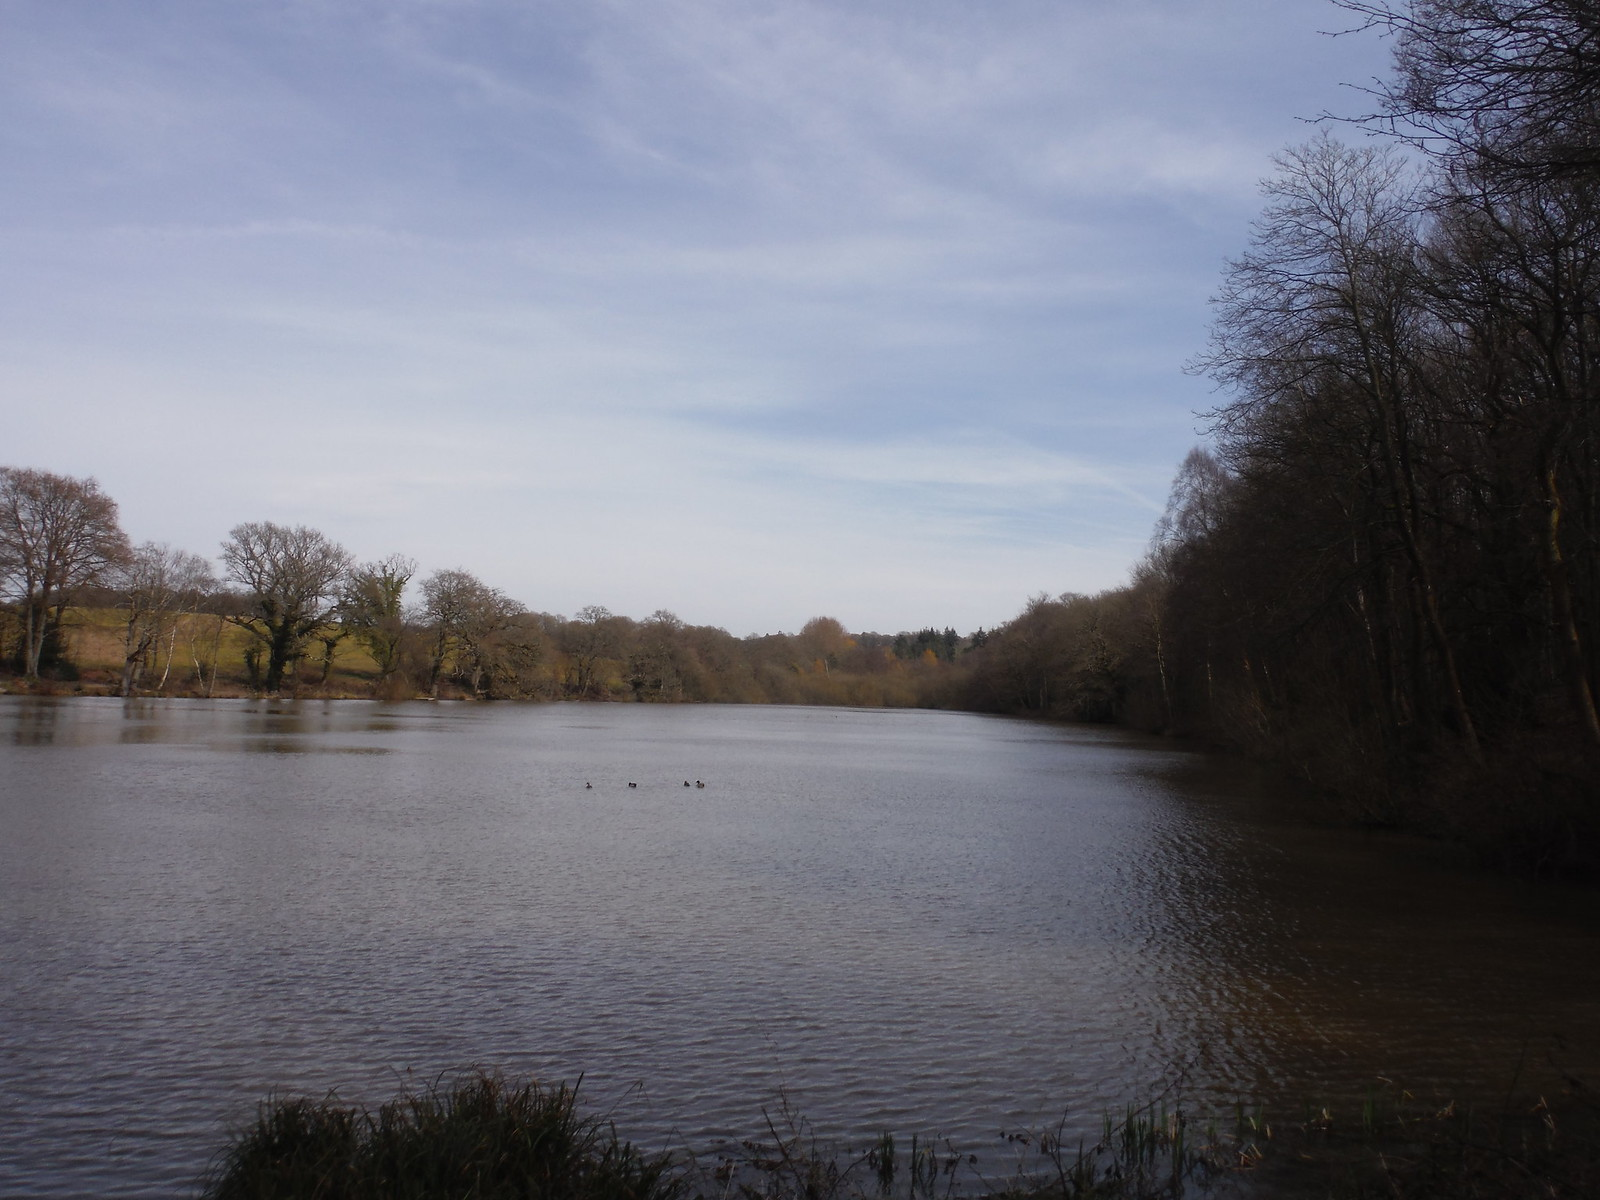 Largest in Chain of Fishing Ponds north of Horsted Keynes SWC Walk 27 - East Grinstead to Wivelsfield or Sheffield Park